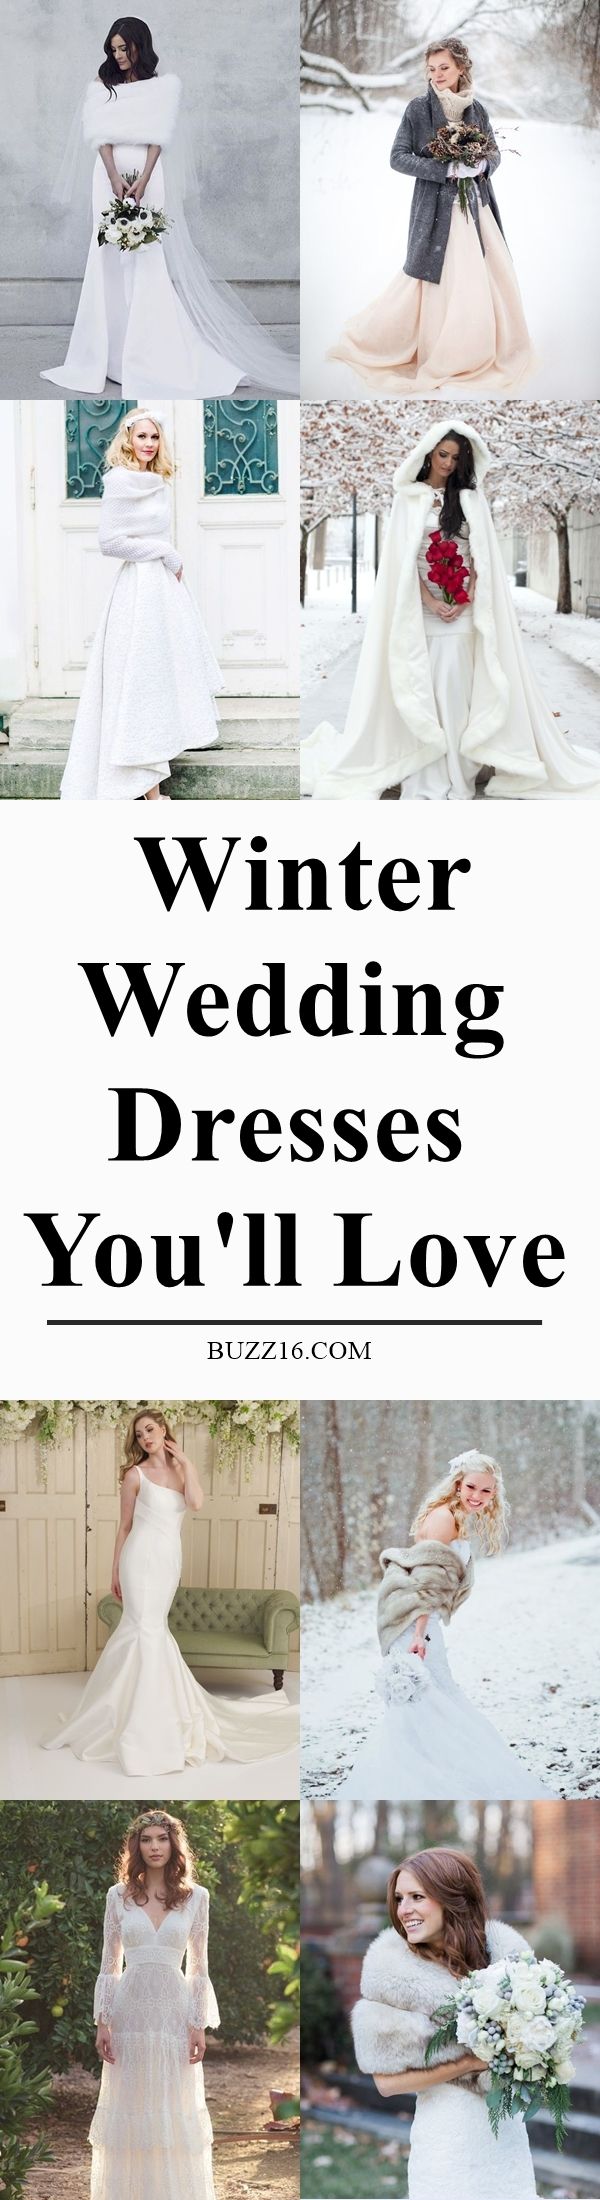 40 Winter Wedding Dresses You'll Love